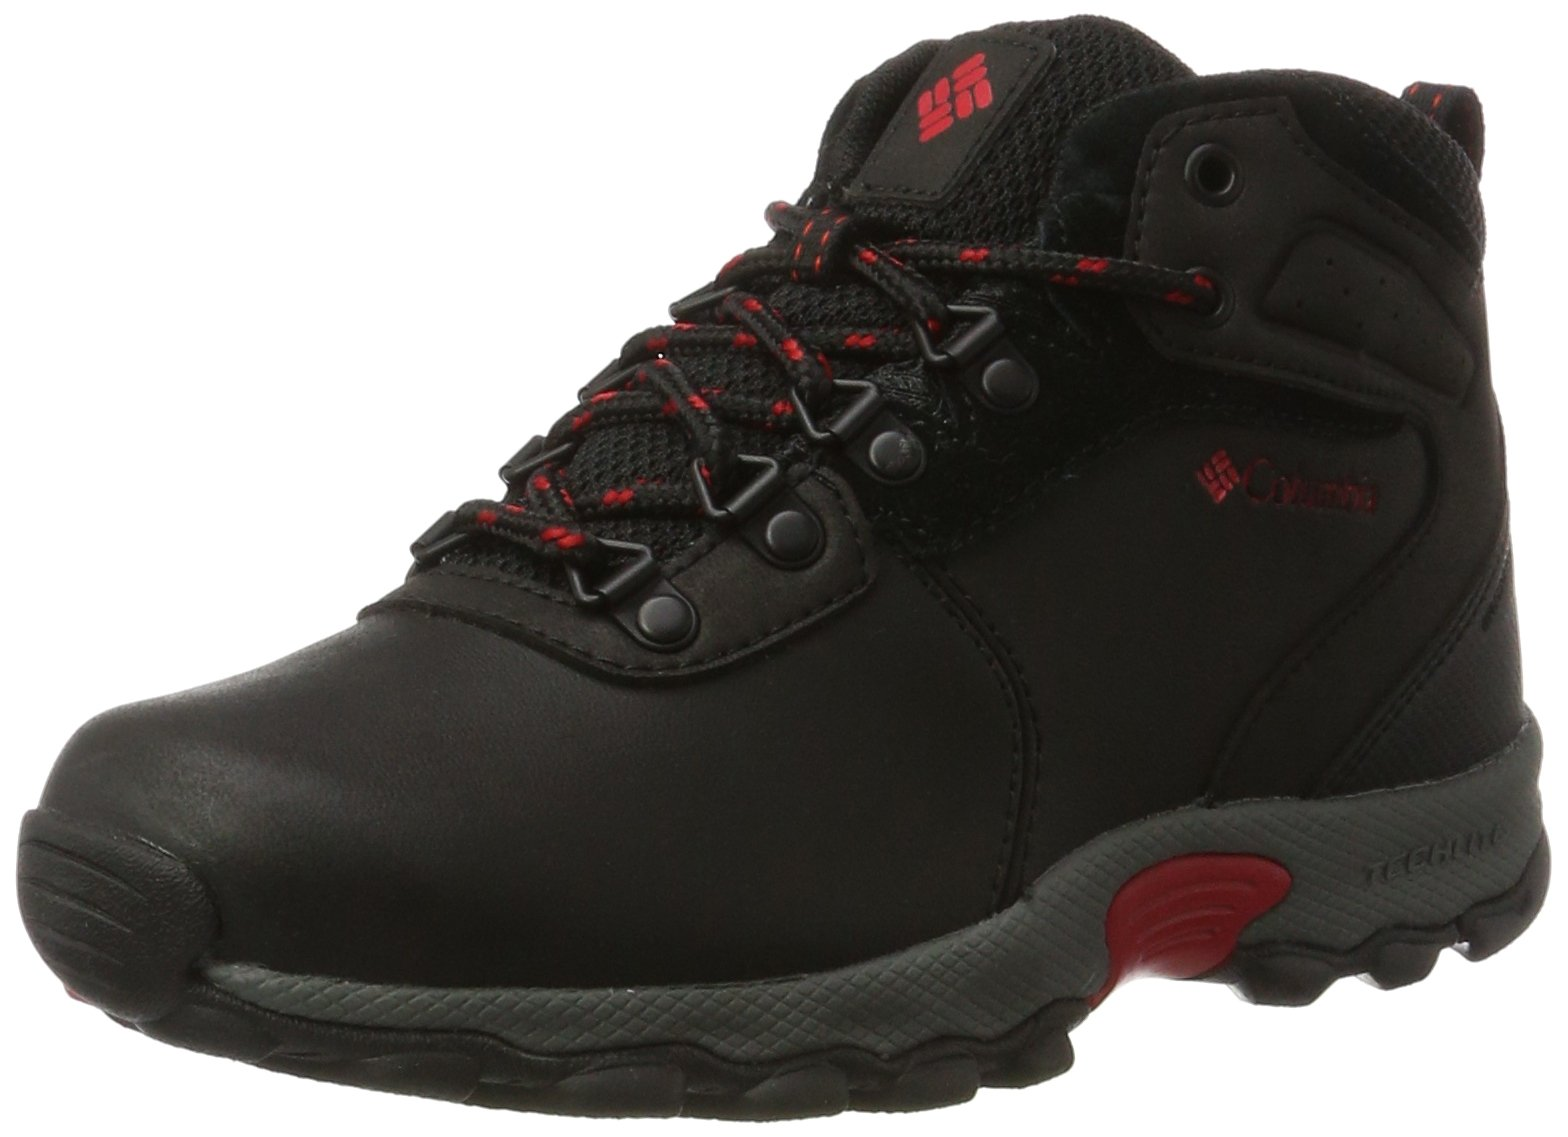 Columbia Unisex Youth Newton Ridge Hiking Shoe Black, Mountain red 3 Regular US Little Kid